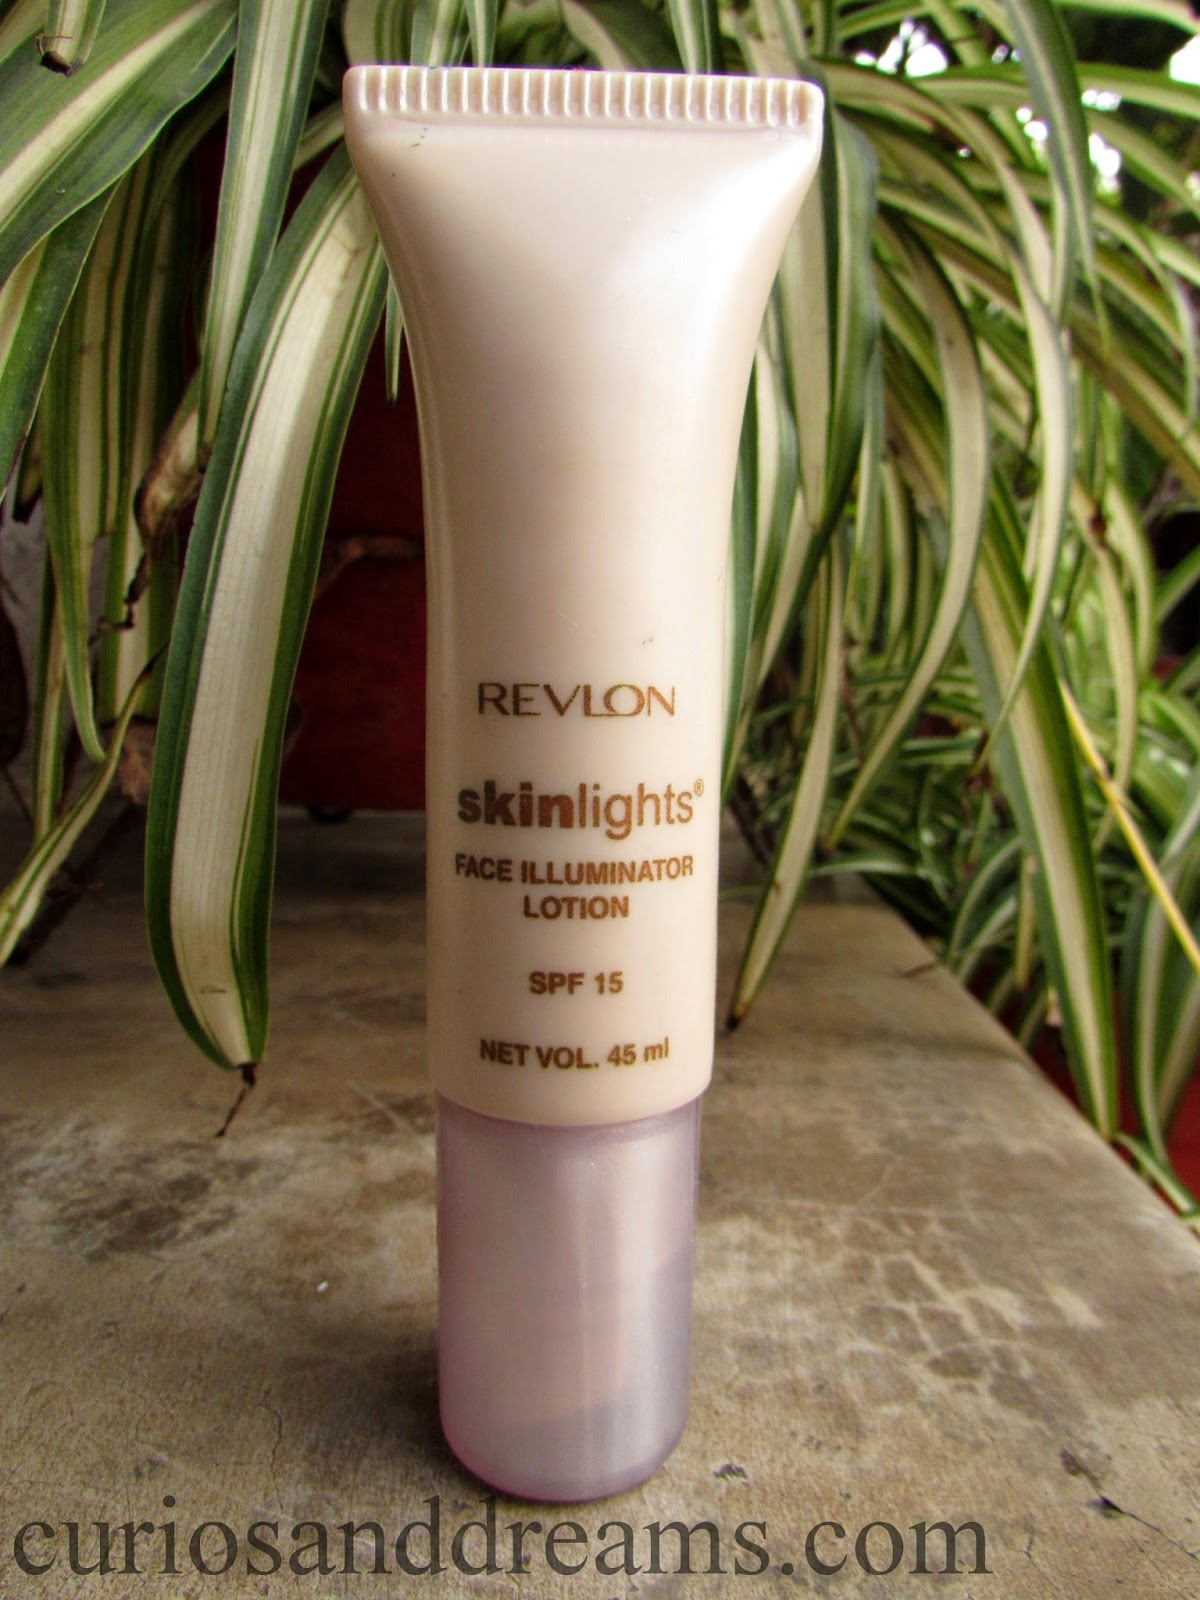 Revlon Skinlights Face Illuminator Lotion Review, Revlon Skinlights Illuminator Review